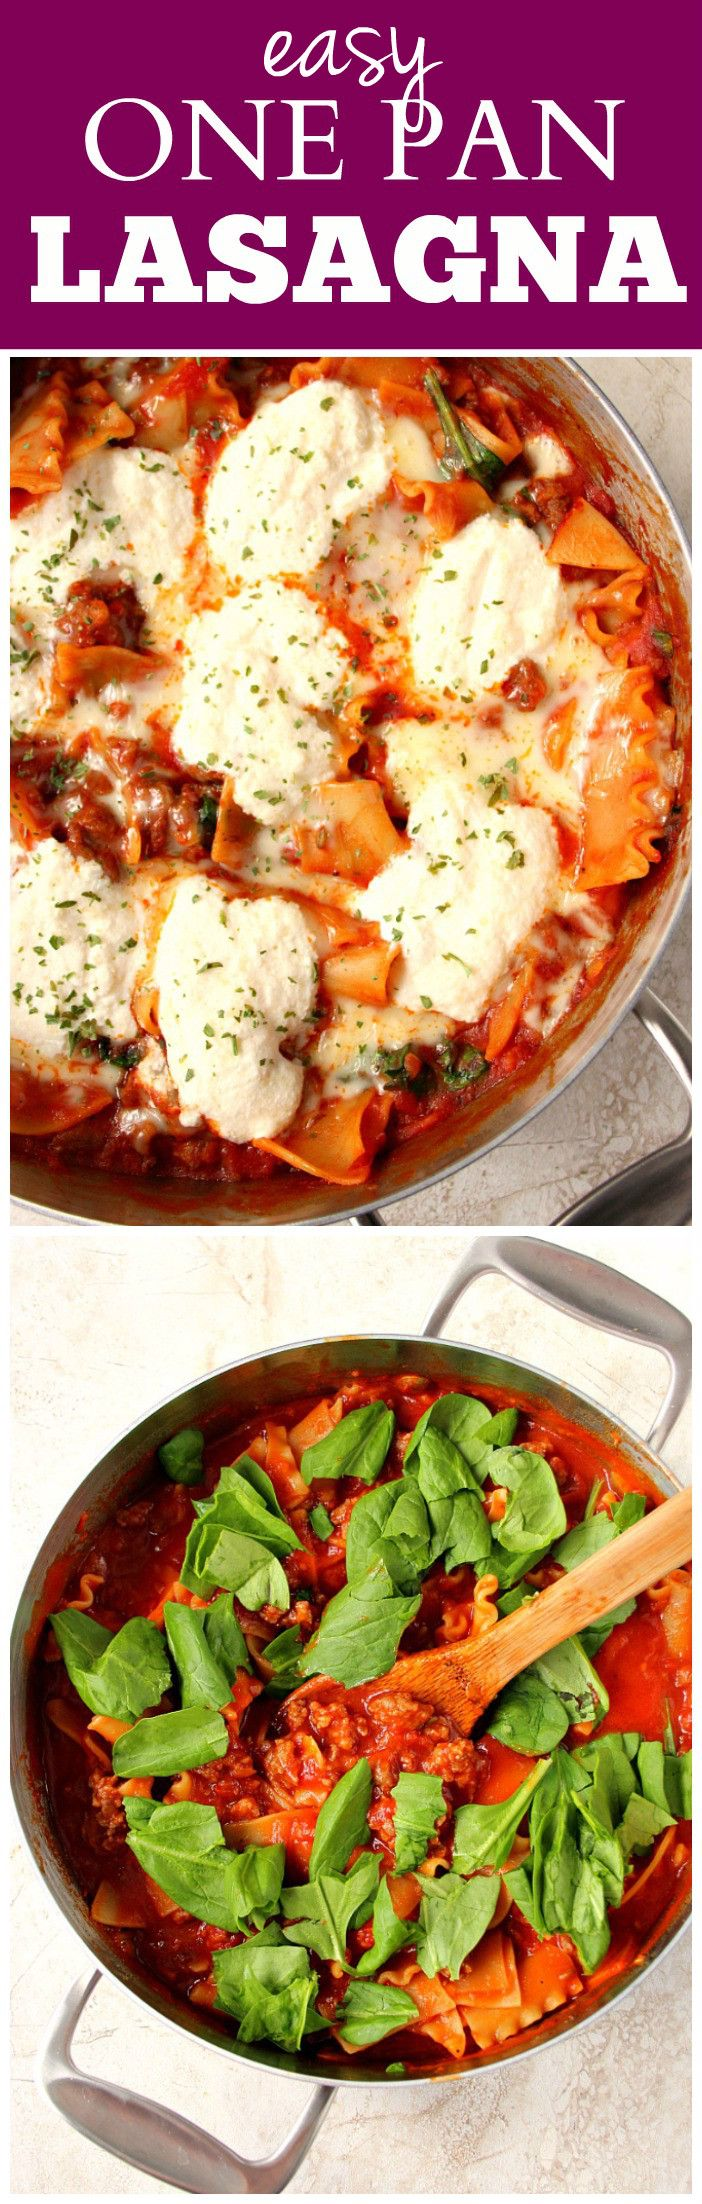 Easy One Pan Lasagna Recipe - quick and easy skillet version of everyone's favorite dish! Made with Italian sausage, delicious sauce, lasagna noodles and topped with cheese!